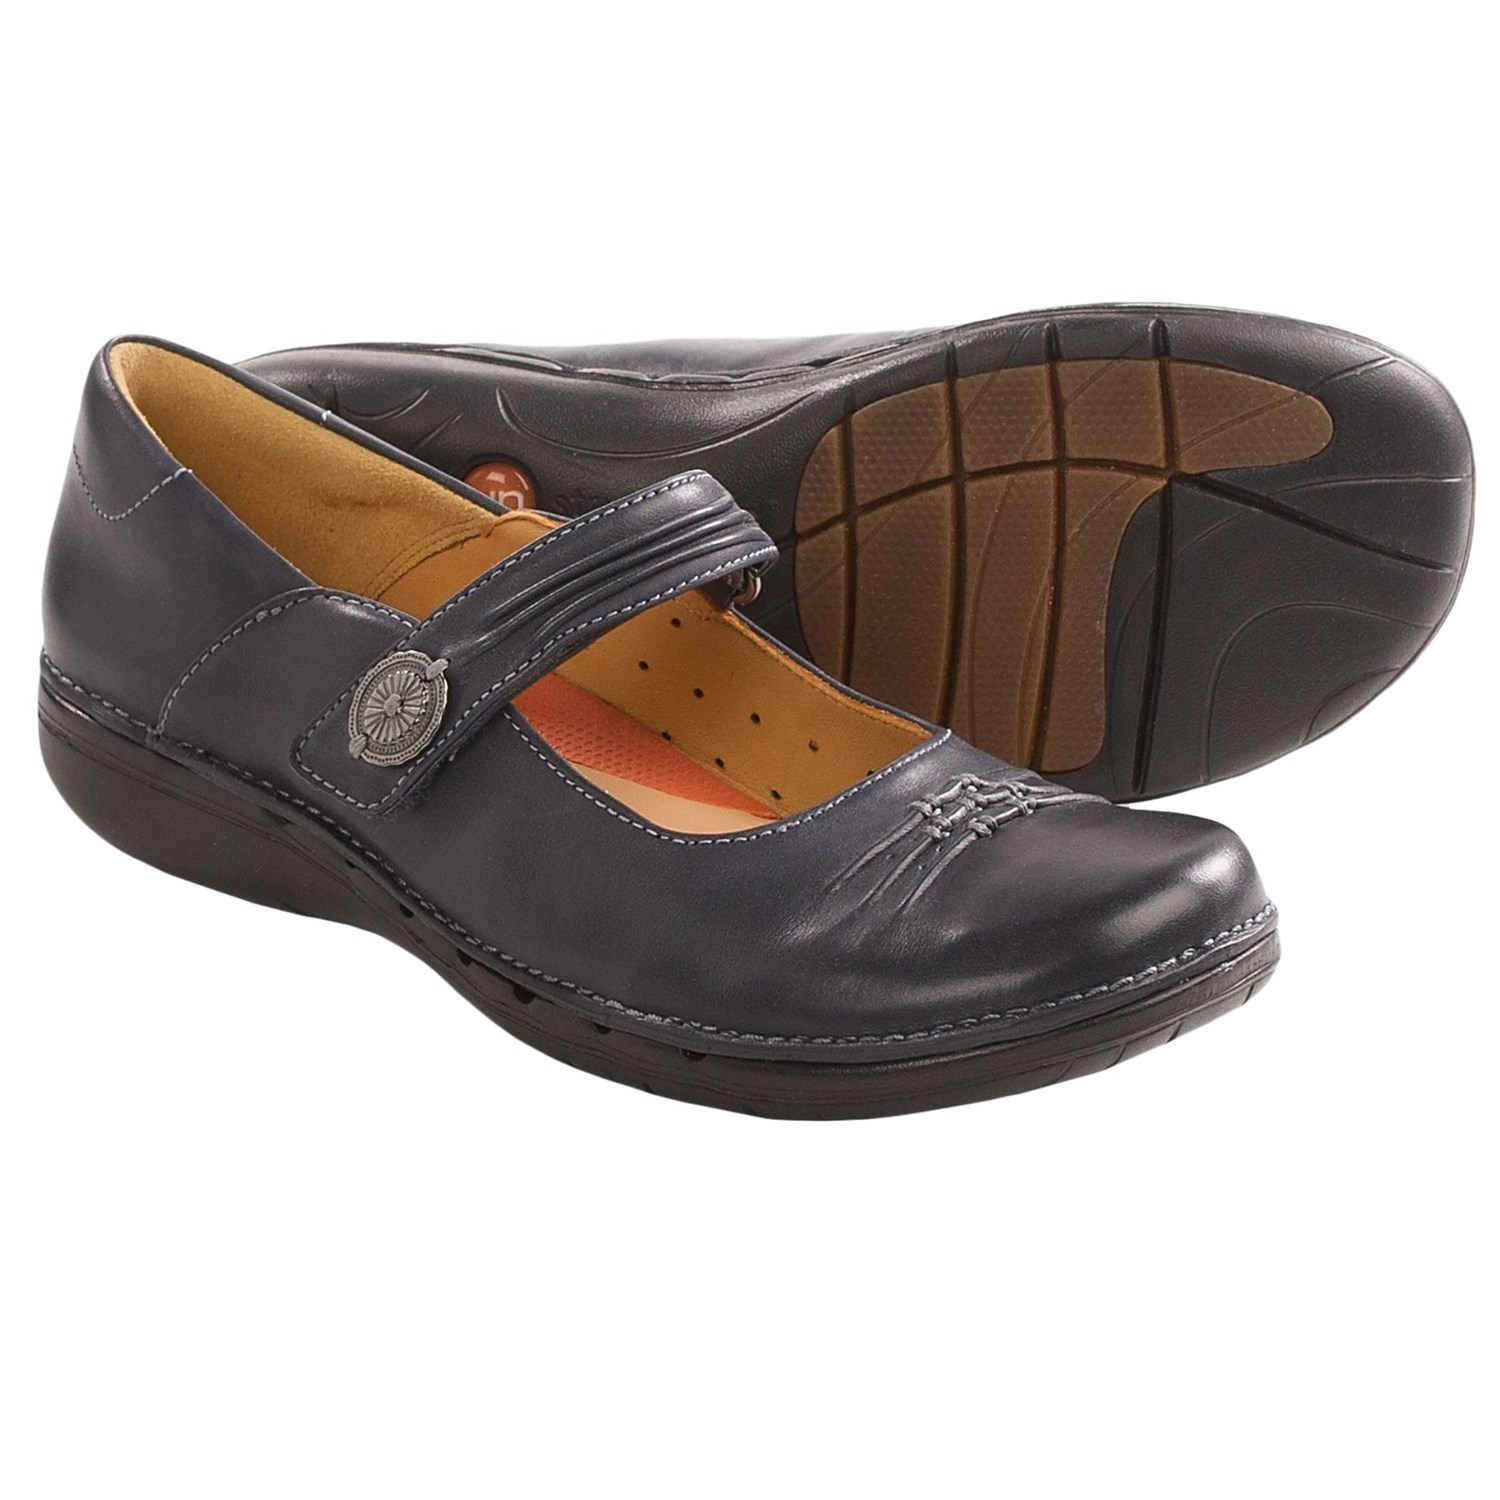 Mary And Clarks Shoes